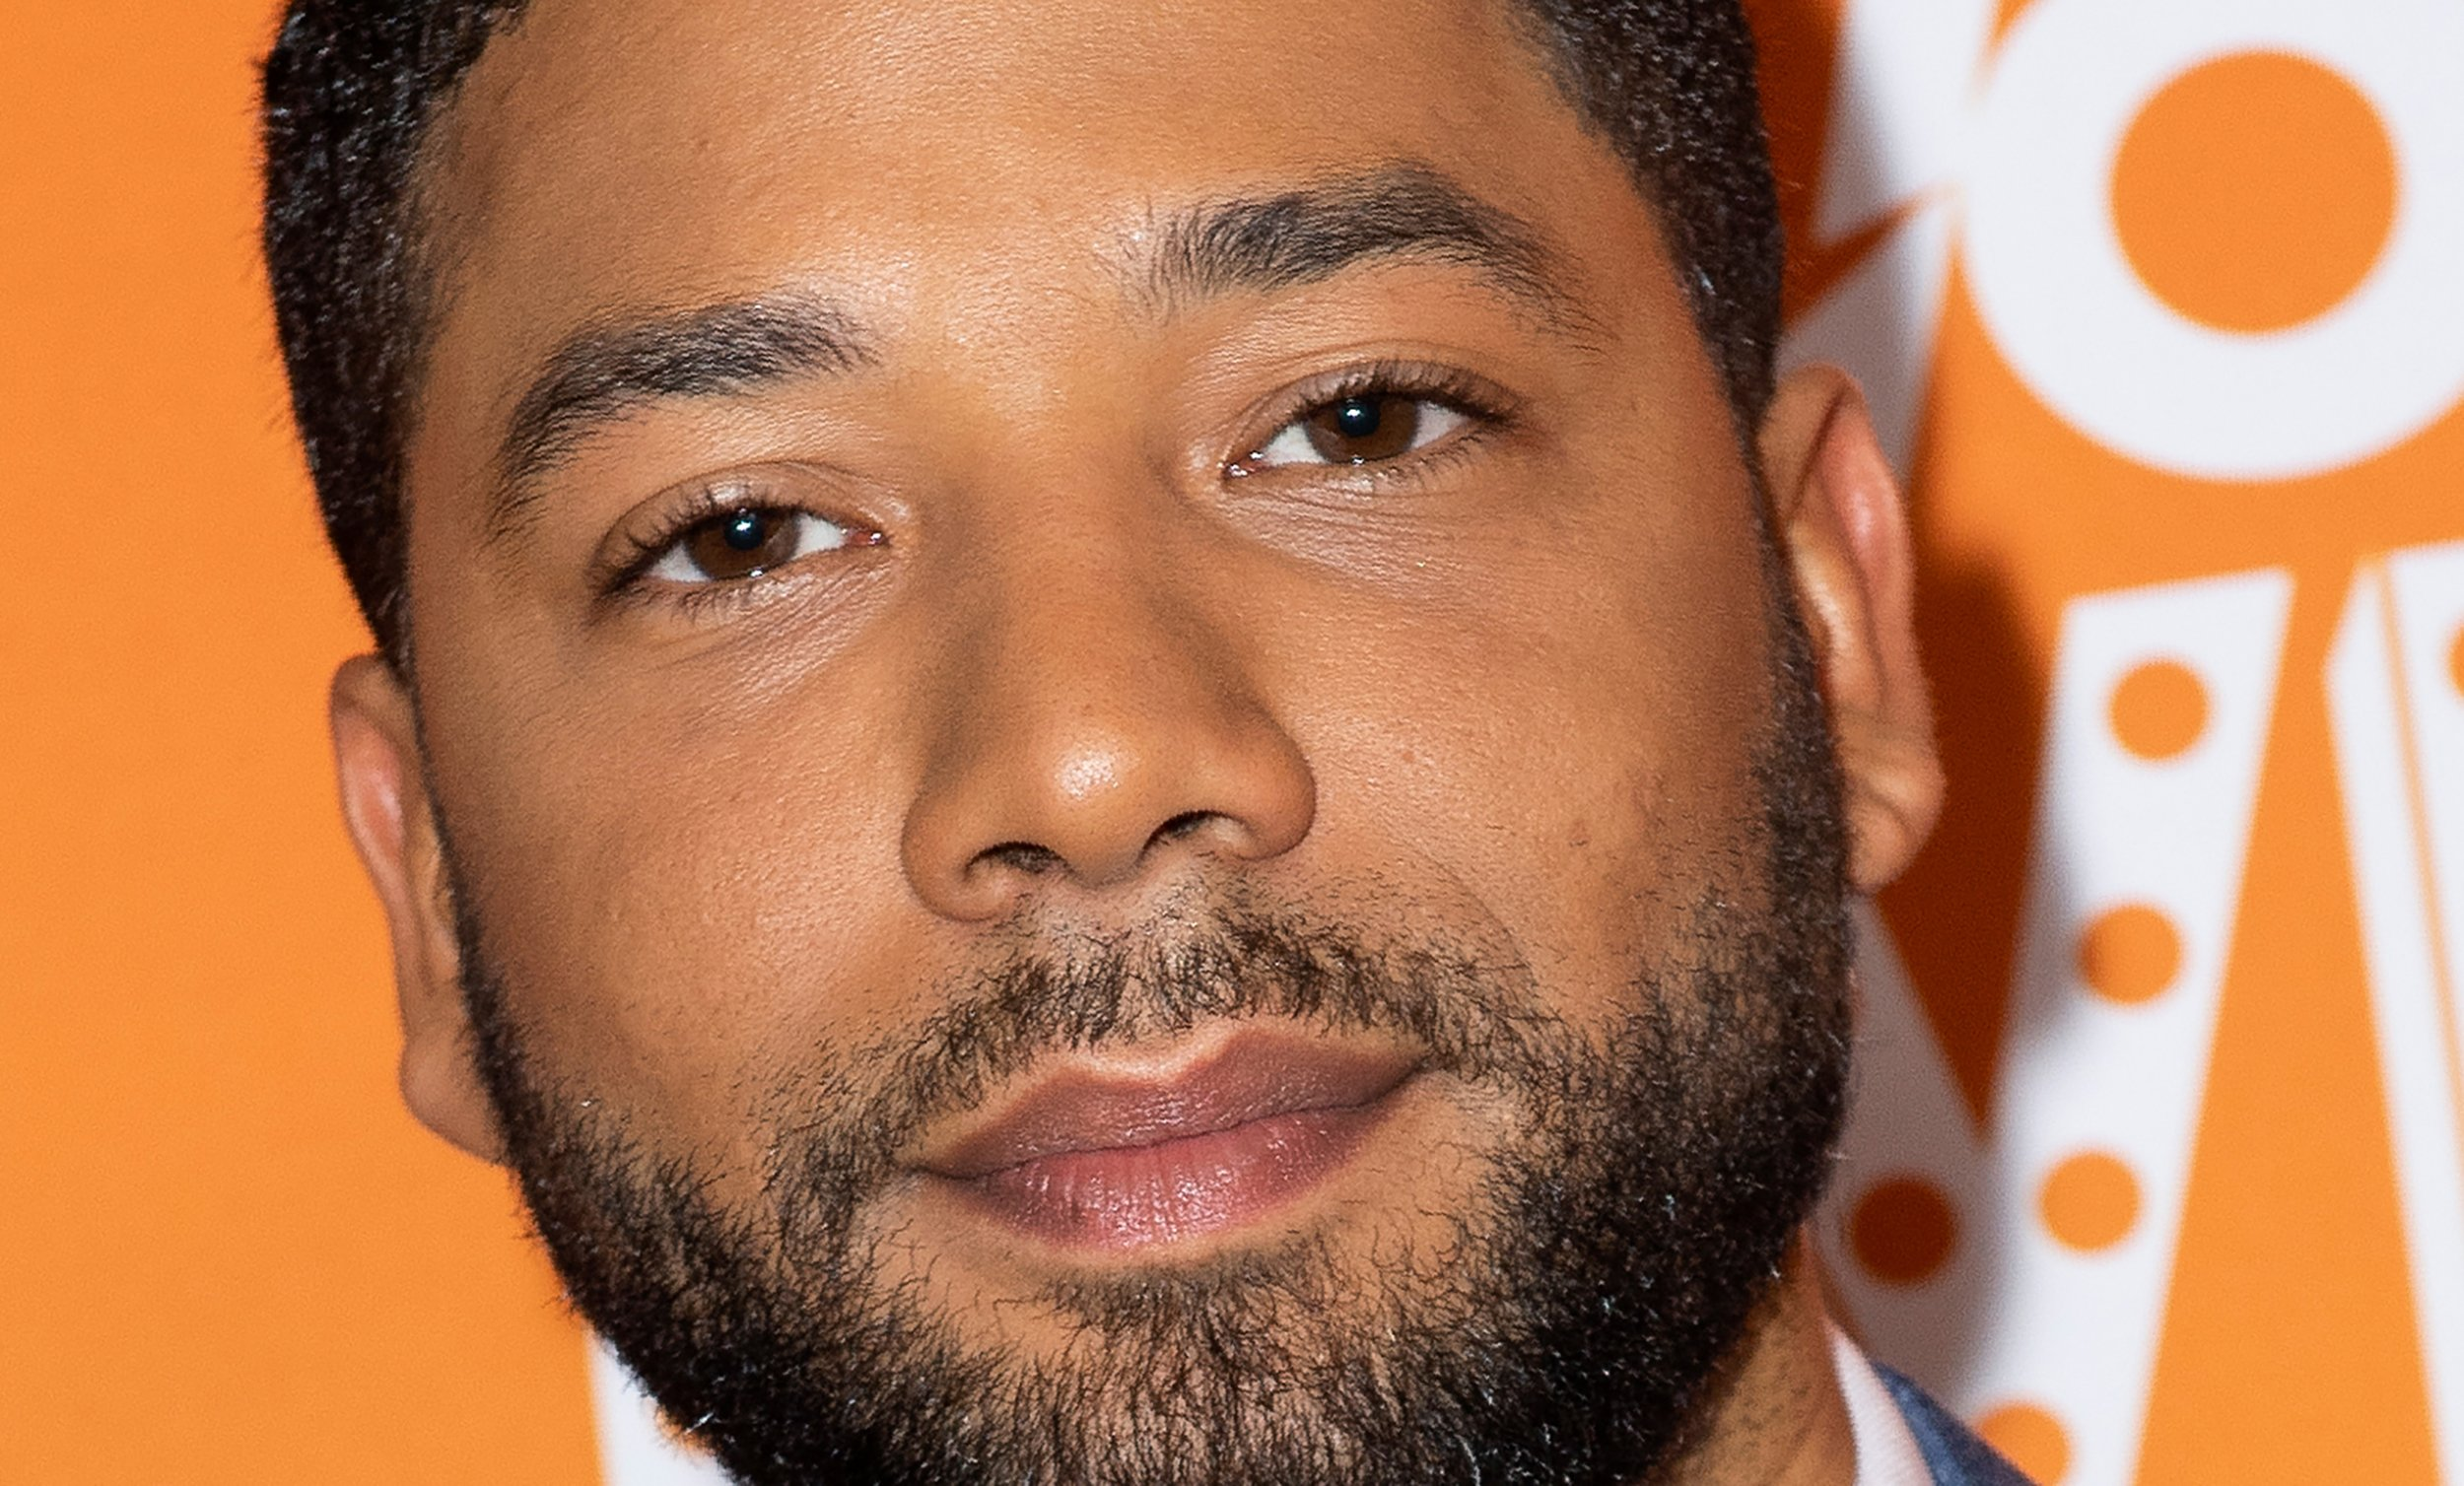 jussie smollett, donald trump racist quote